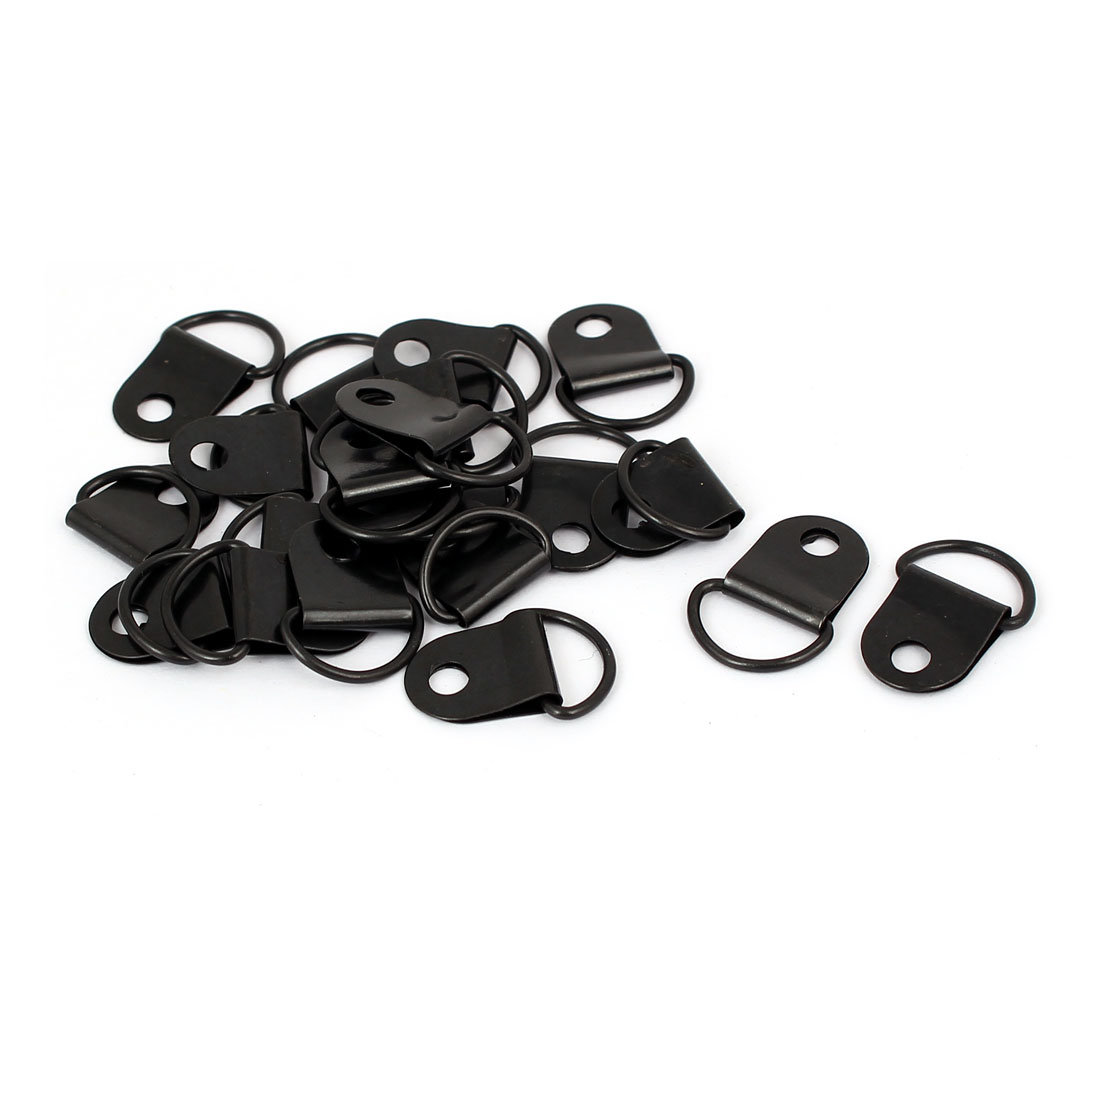 Picture Photo Frame Hanging Single Hole D-Ring Hanger 19mmx13mm Black 20pcs